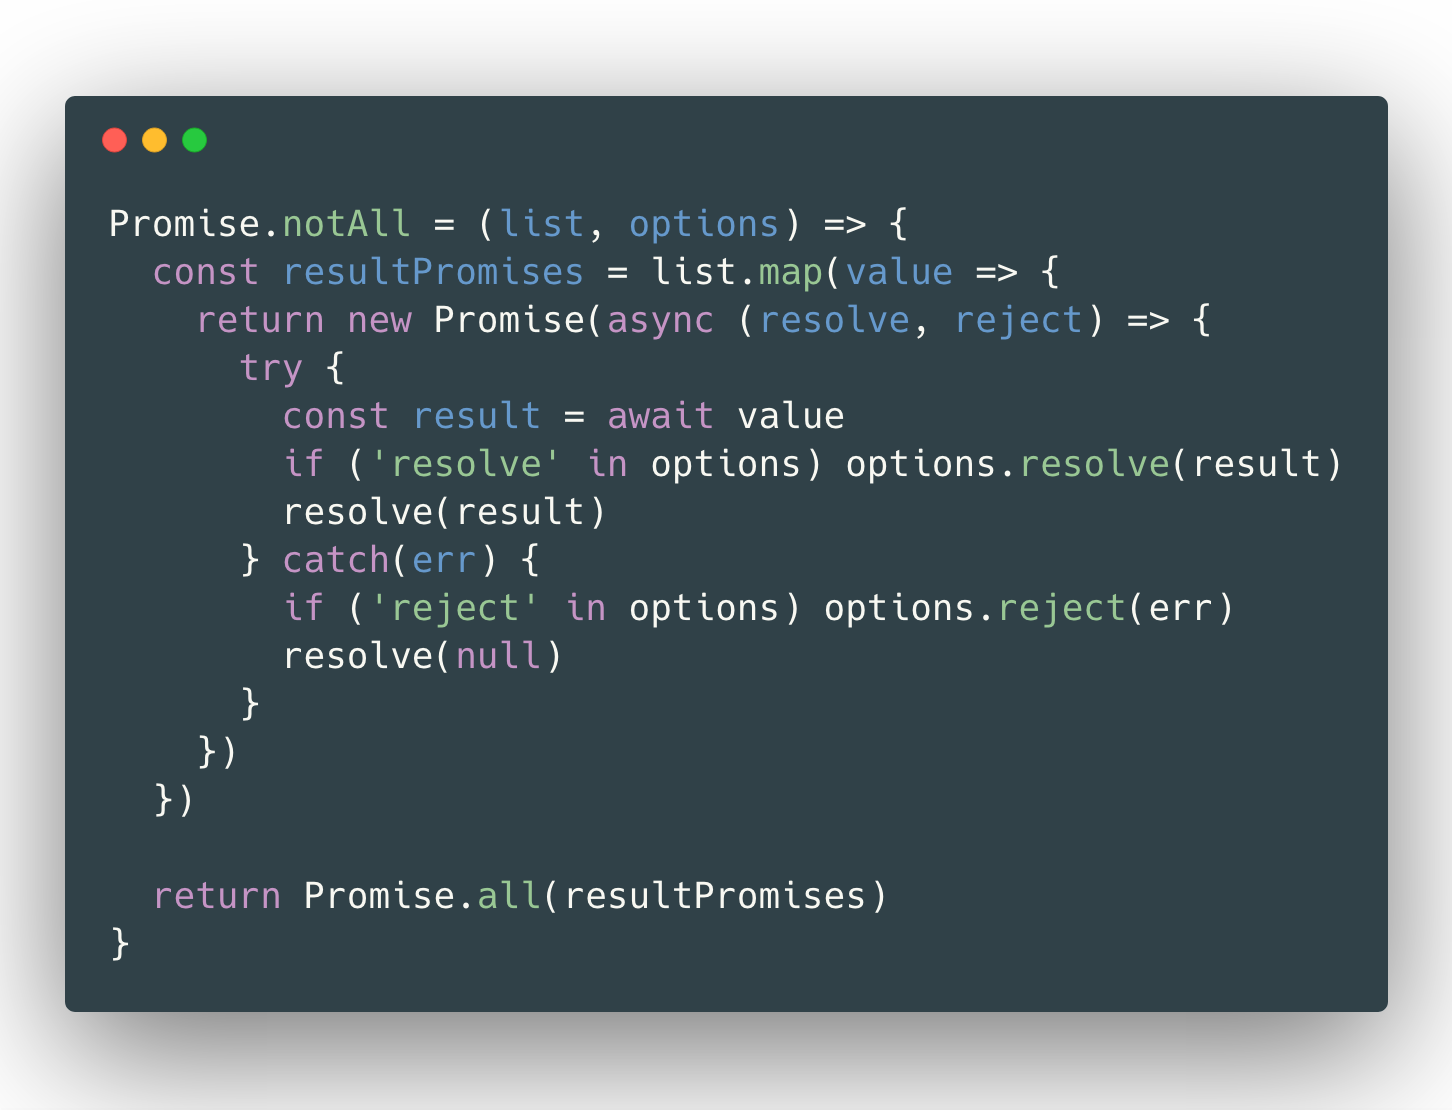 Promise.notAll Code